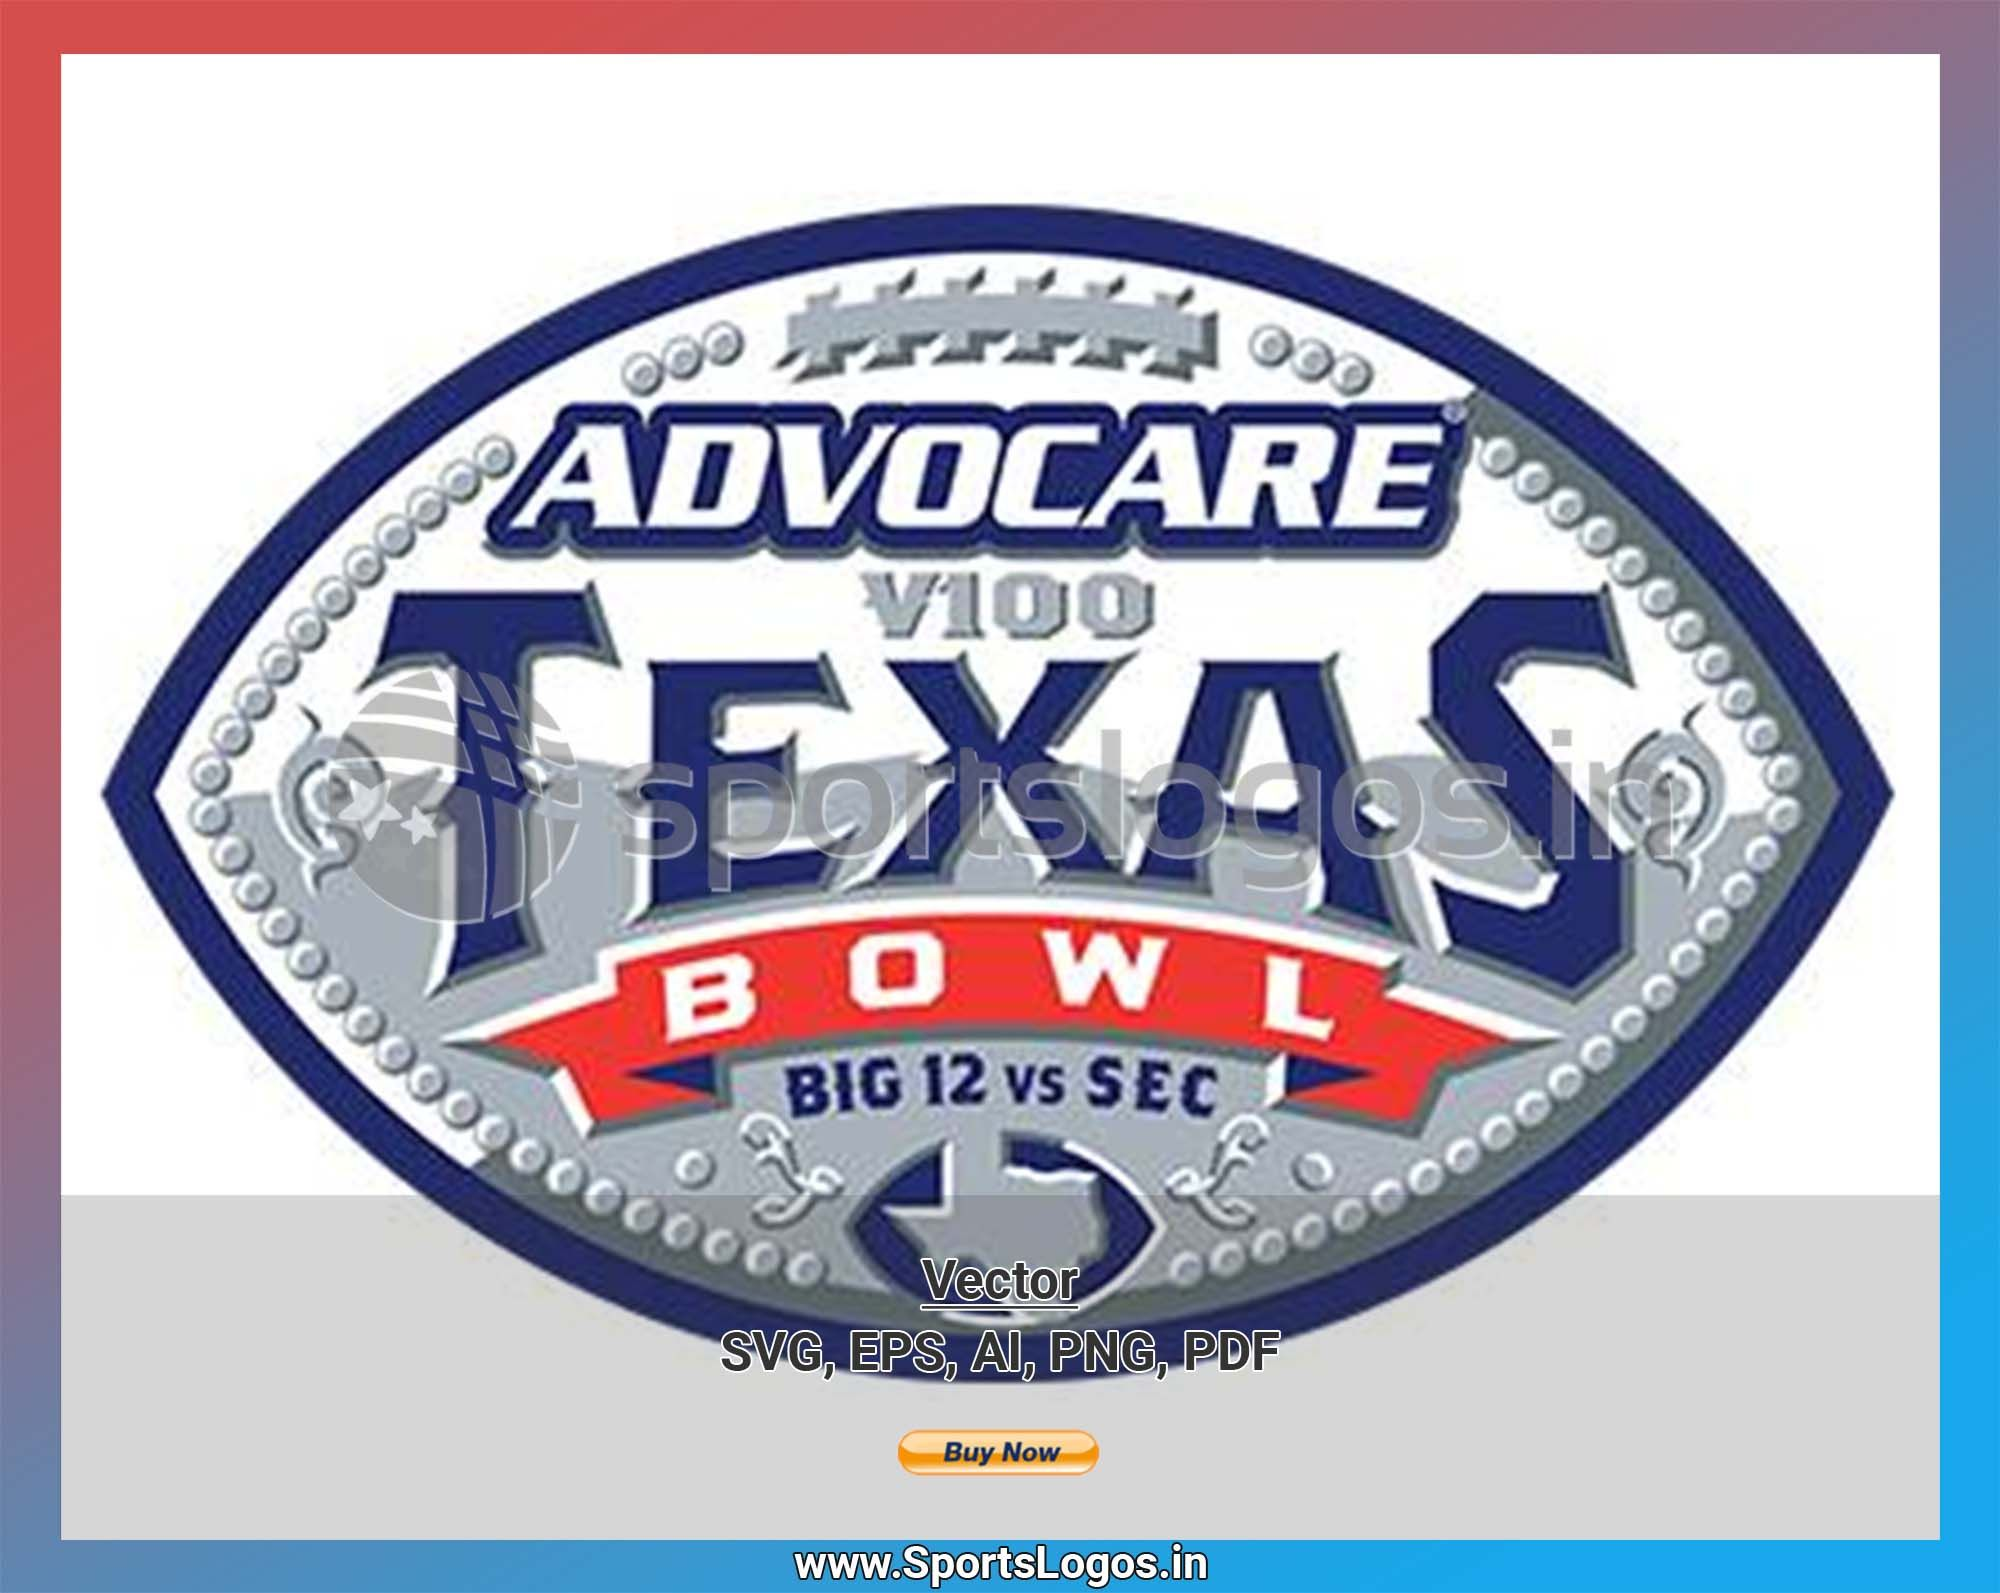 Texas Bowl College Sports Vector Svg Logo In 5 Formats Spln004384 Sports Logos Embroidery Vector For Nfl Nba Nhl Mlb Milb And More Texas Bowl Embroidery Logo Sports Logo